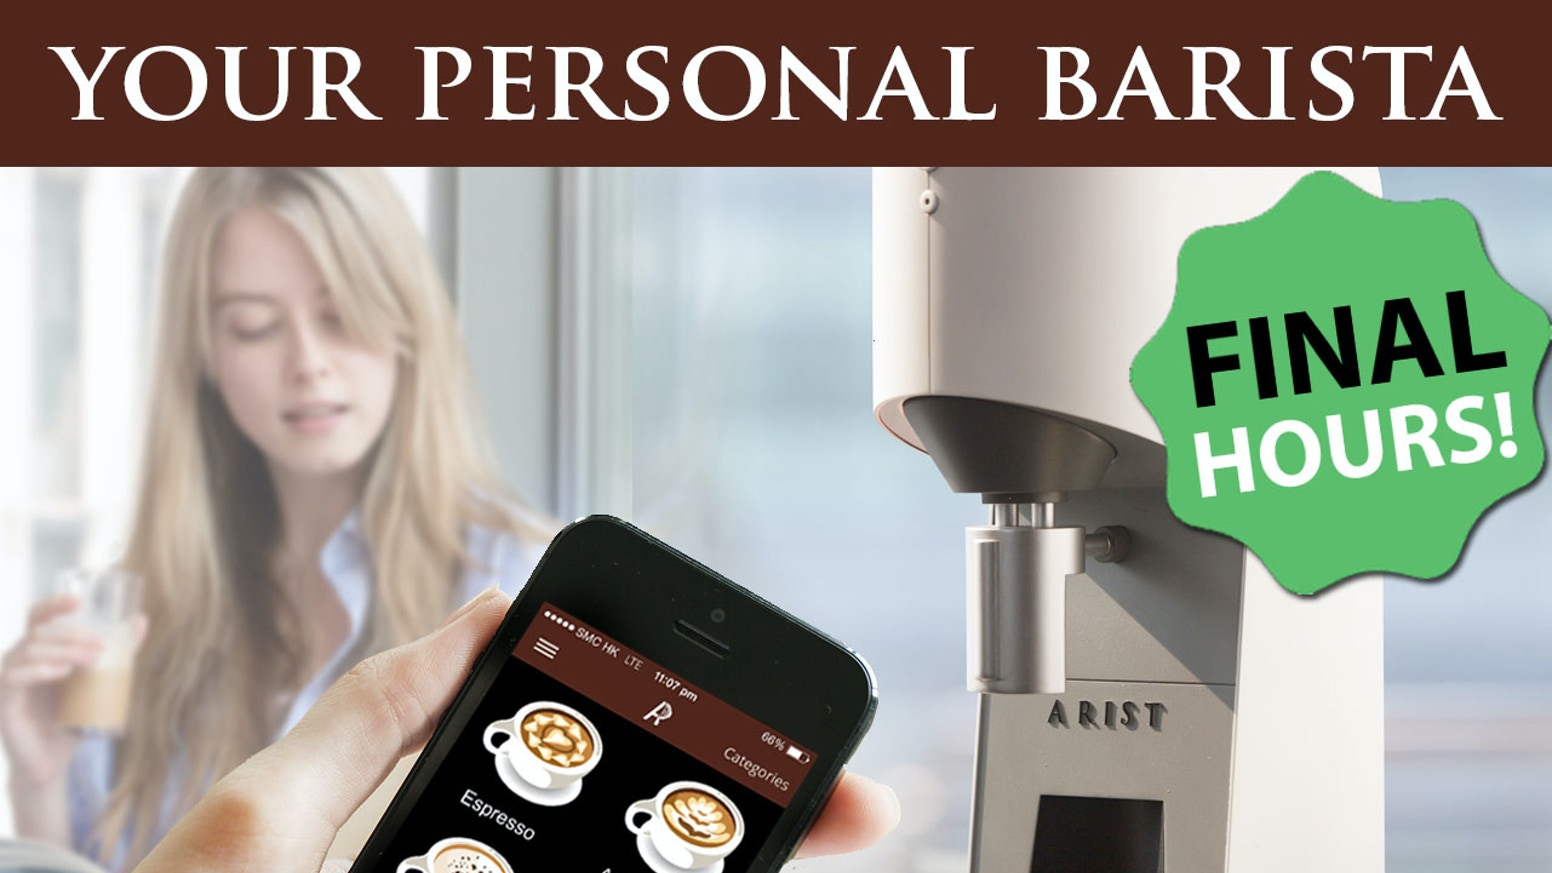 The Arist coffee machine brews coffee like the world's best baristas at the tap of a smartphone.